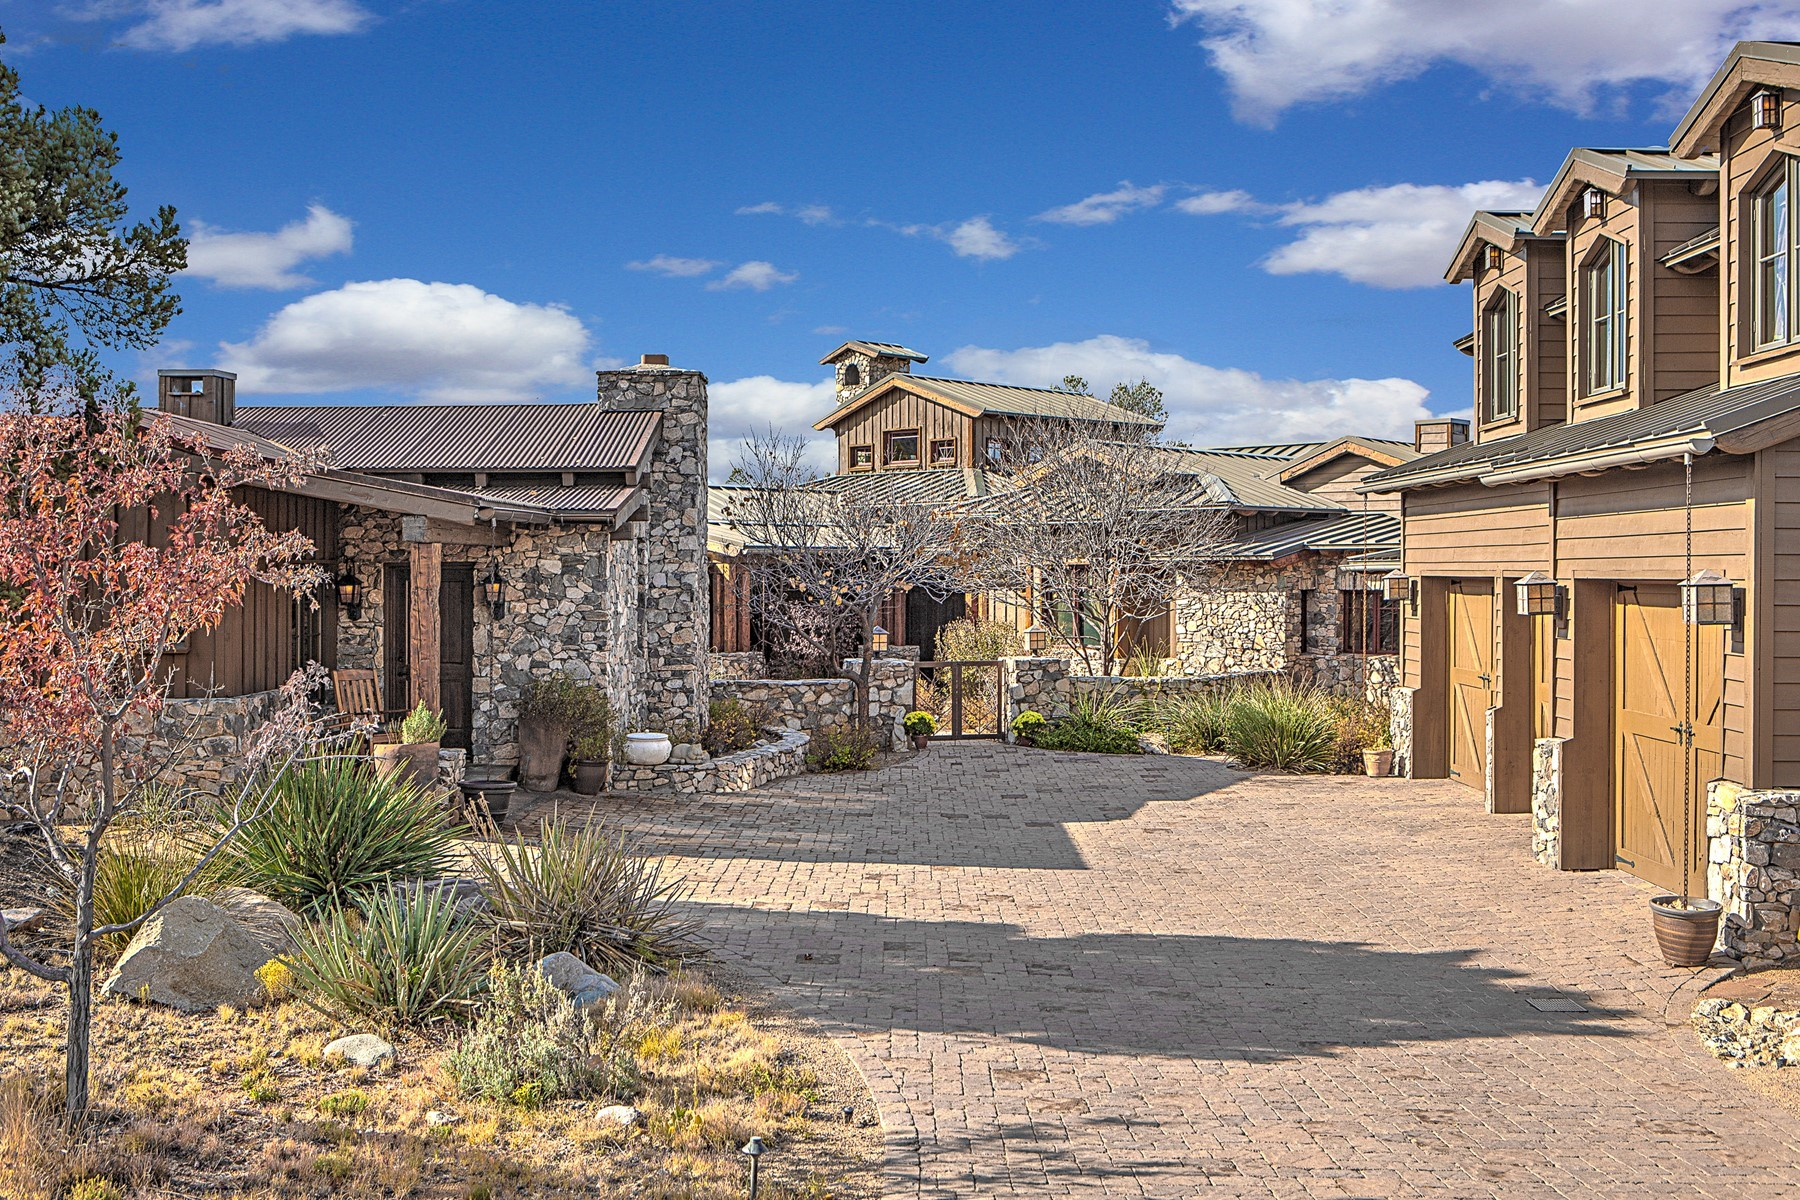 Single Family Homes for Active at Cooper Morgan Ranch 14740 N Agave Meadow Way Prescott, Arizona 86305 United States